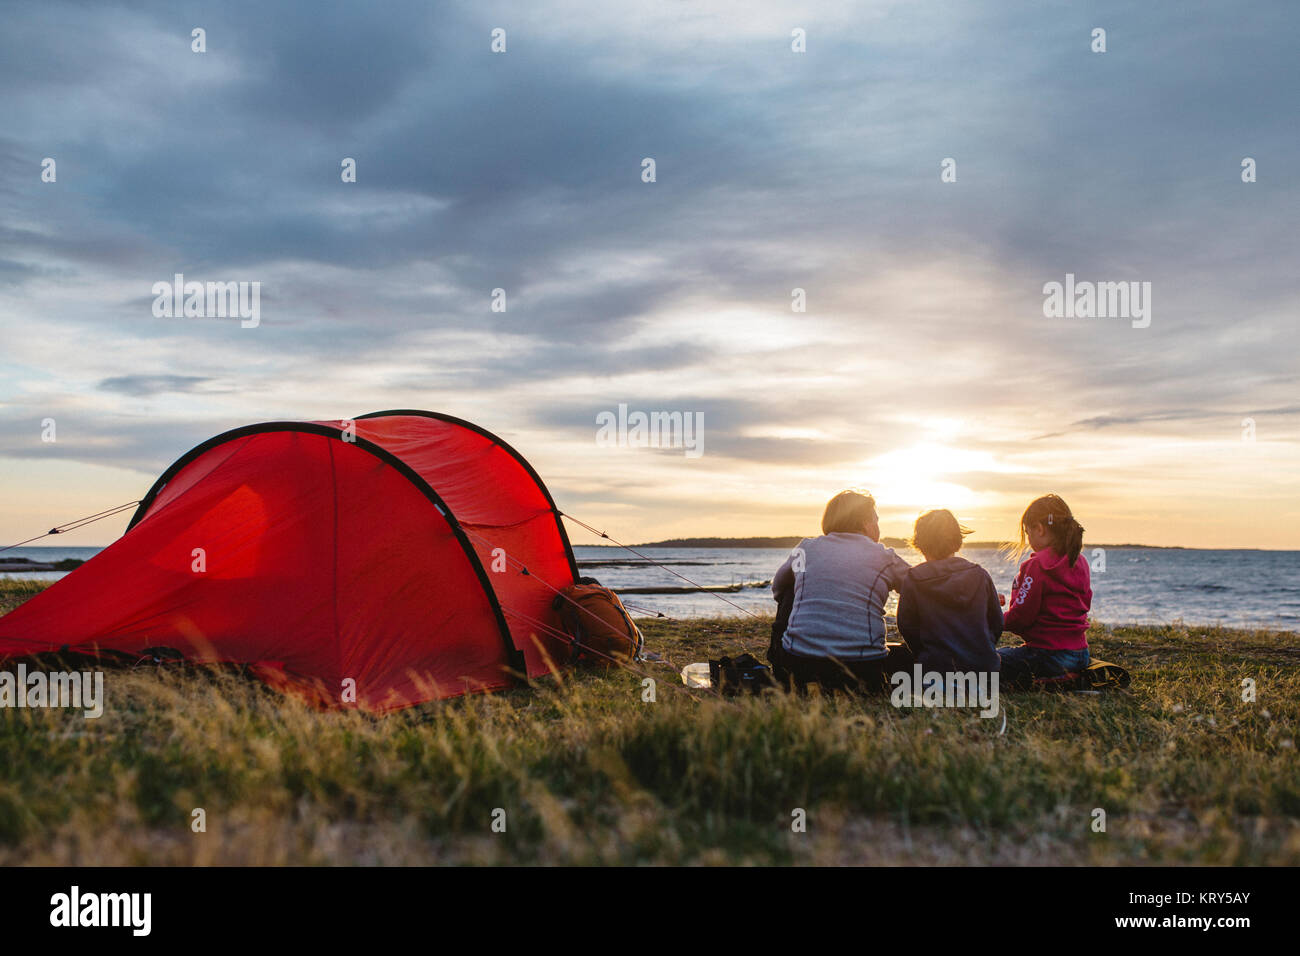 A family camping - Stock Image